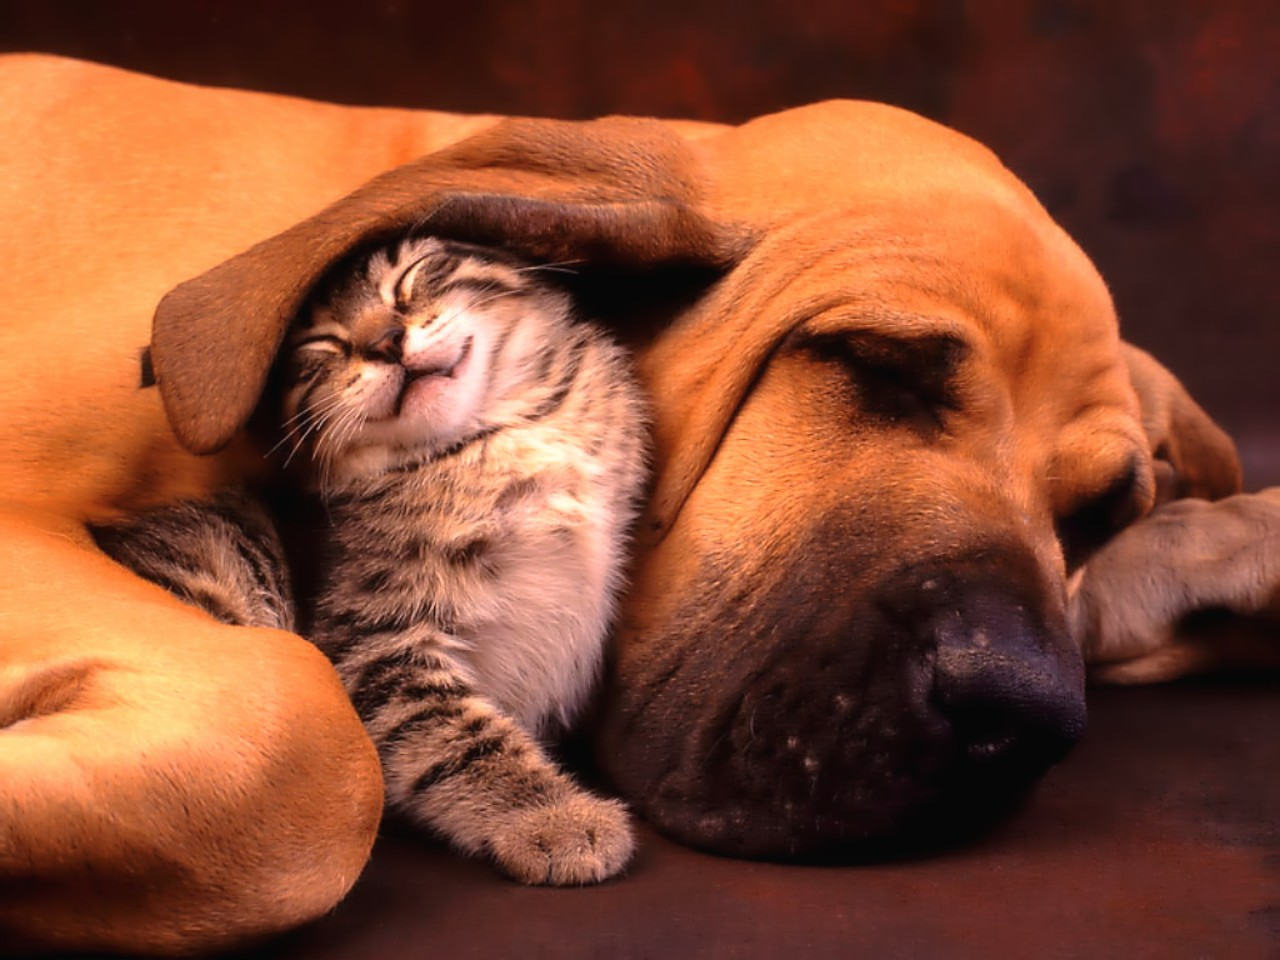 Naturalement Best - Page 3 Images-bebes-animaux%20(30)